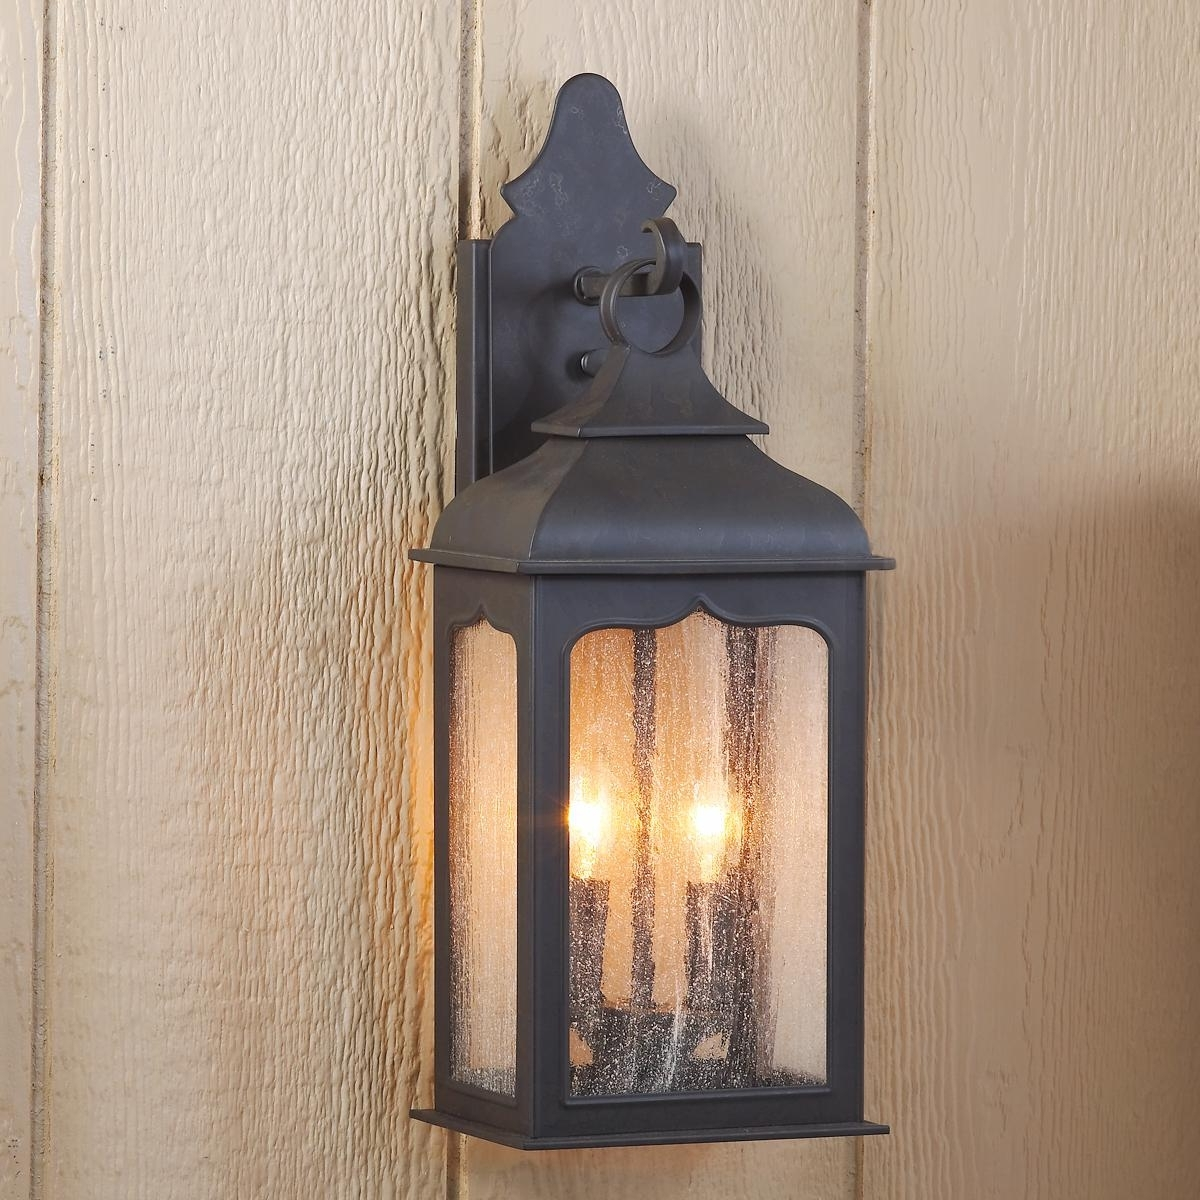 Lighting Intended For 2019 Gothic Outdoor Wall Lighting (View 14 of 20)